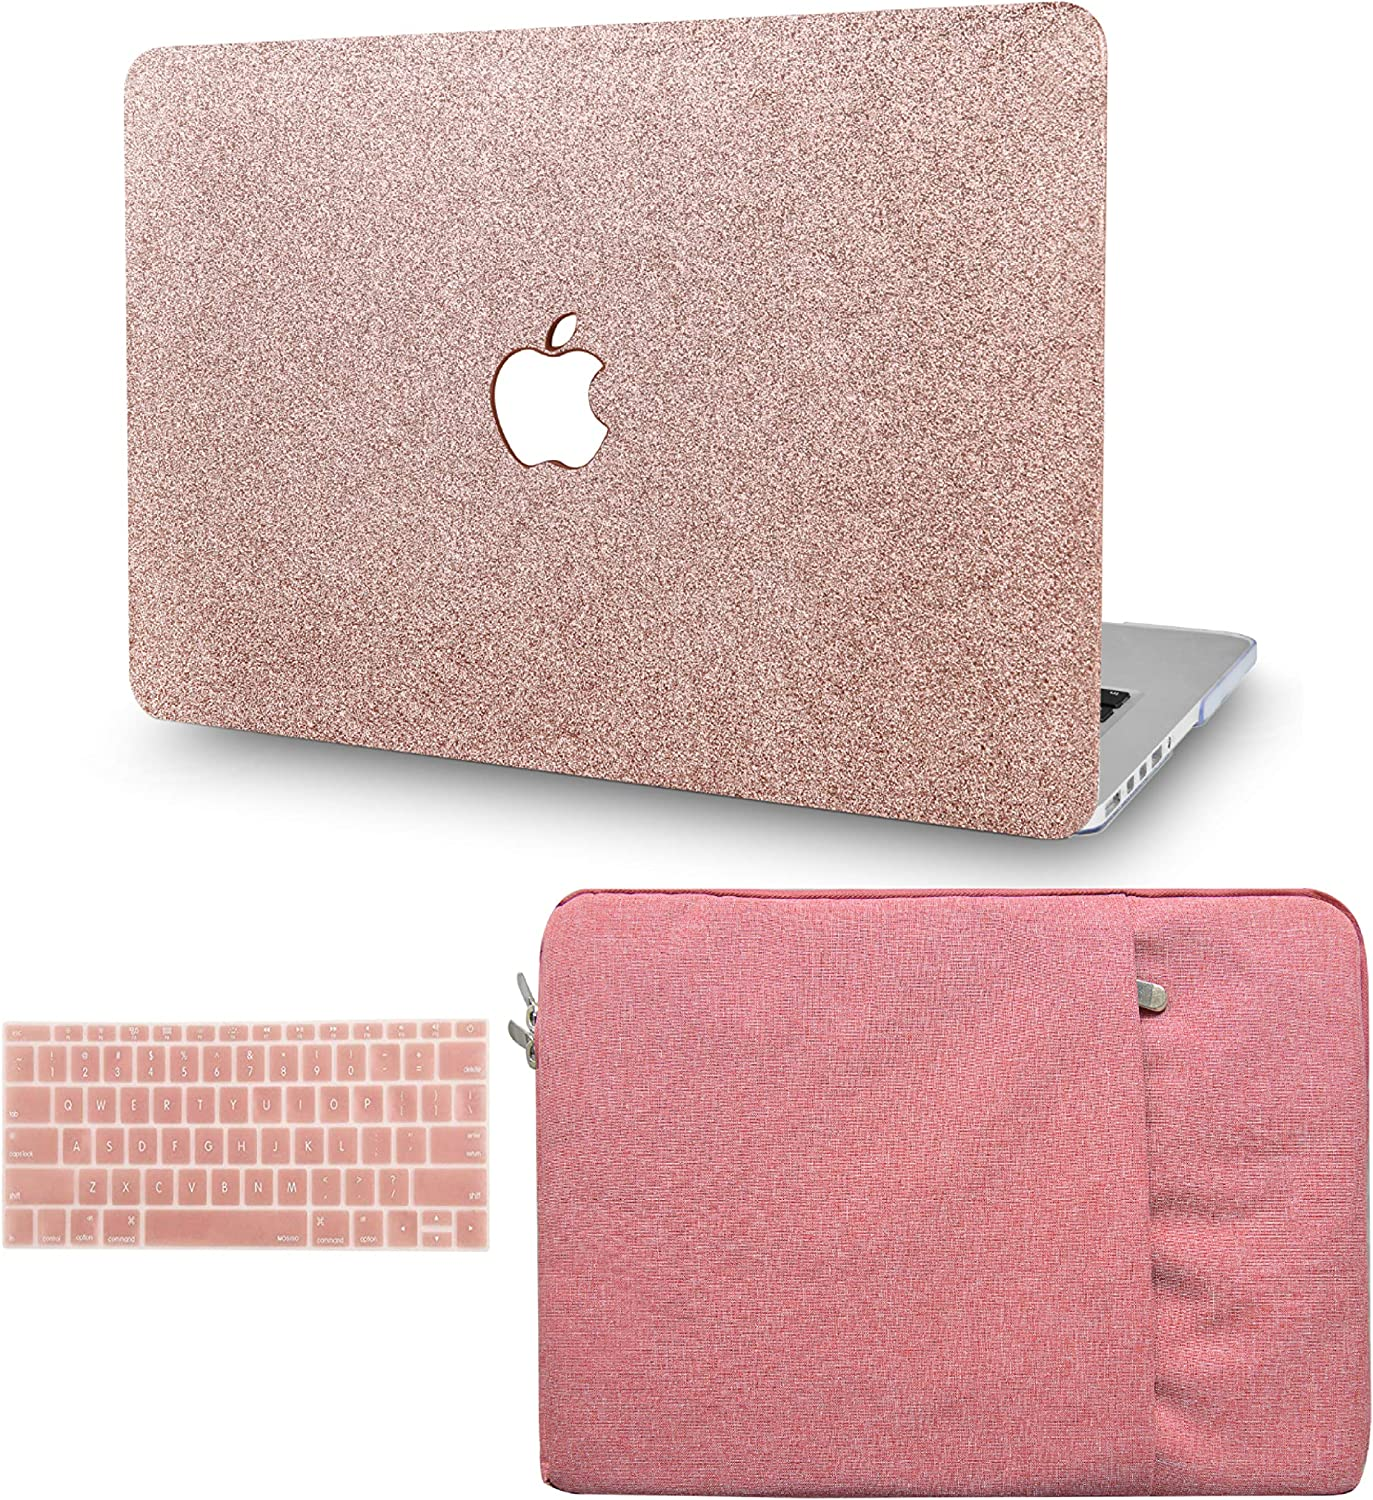 "KECC Laptop Case for MacBook Air 13"" Retina (2020/2019/2018, Touch ID) w/Keyboard Cover + Sleeve Plastic Hard Shell Case A1932 3 in 1 Bundle (Rose Gold Sparkling)"